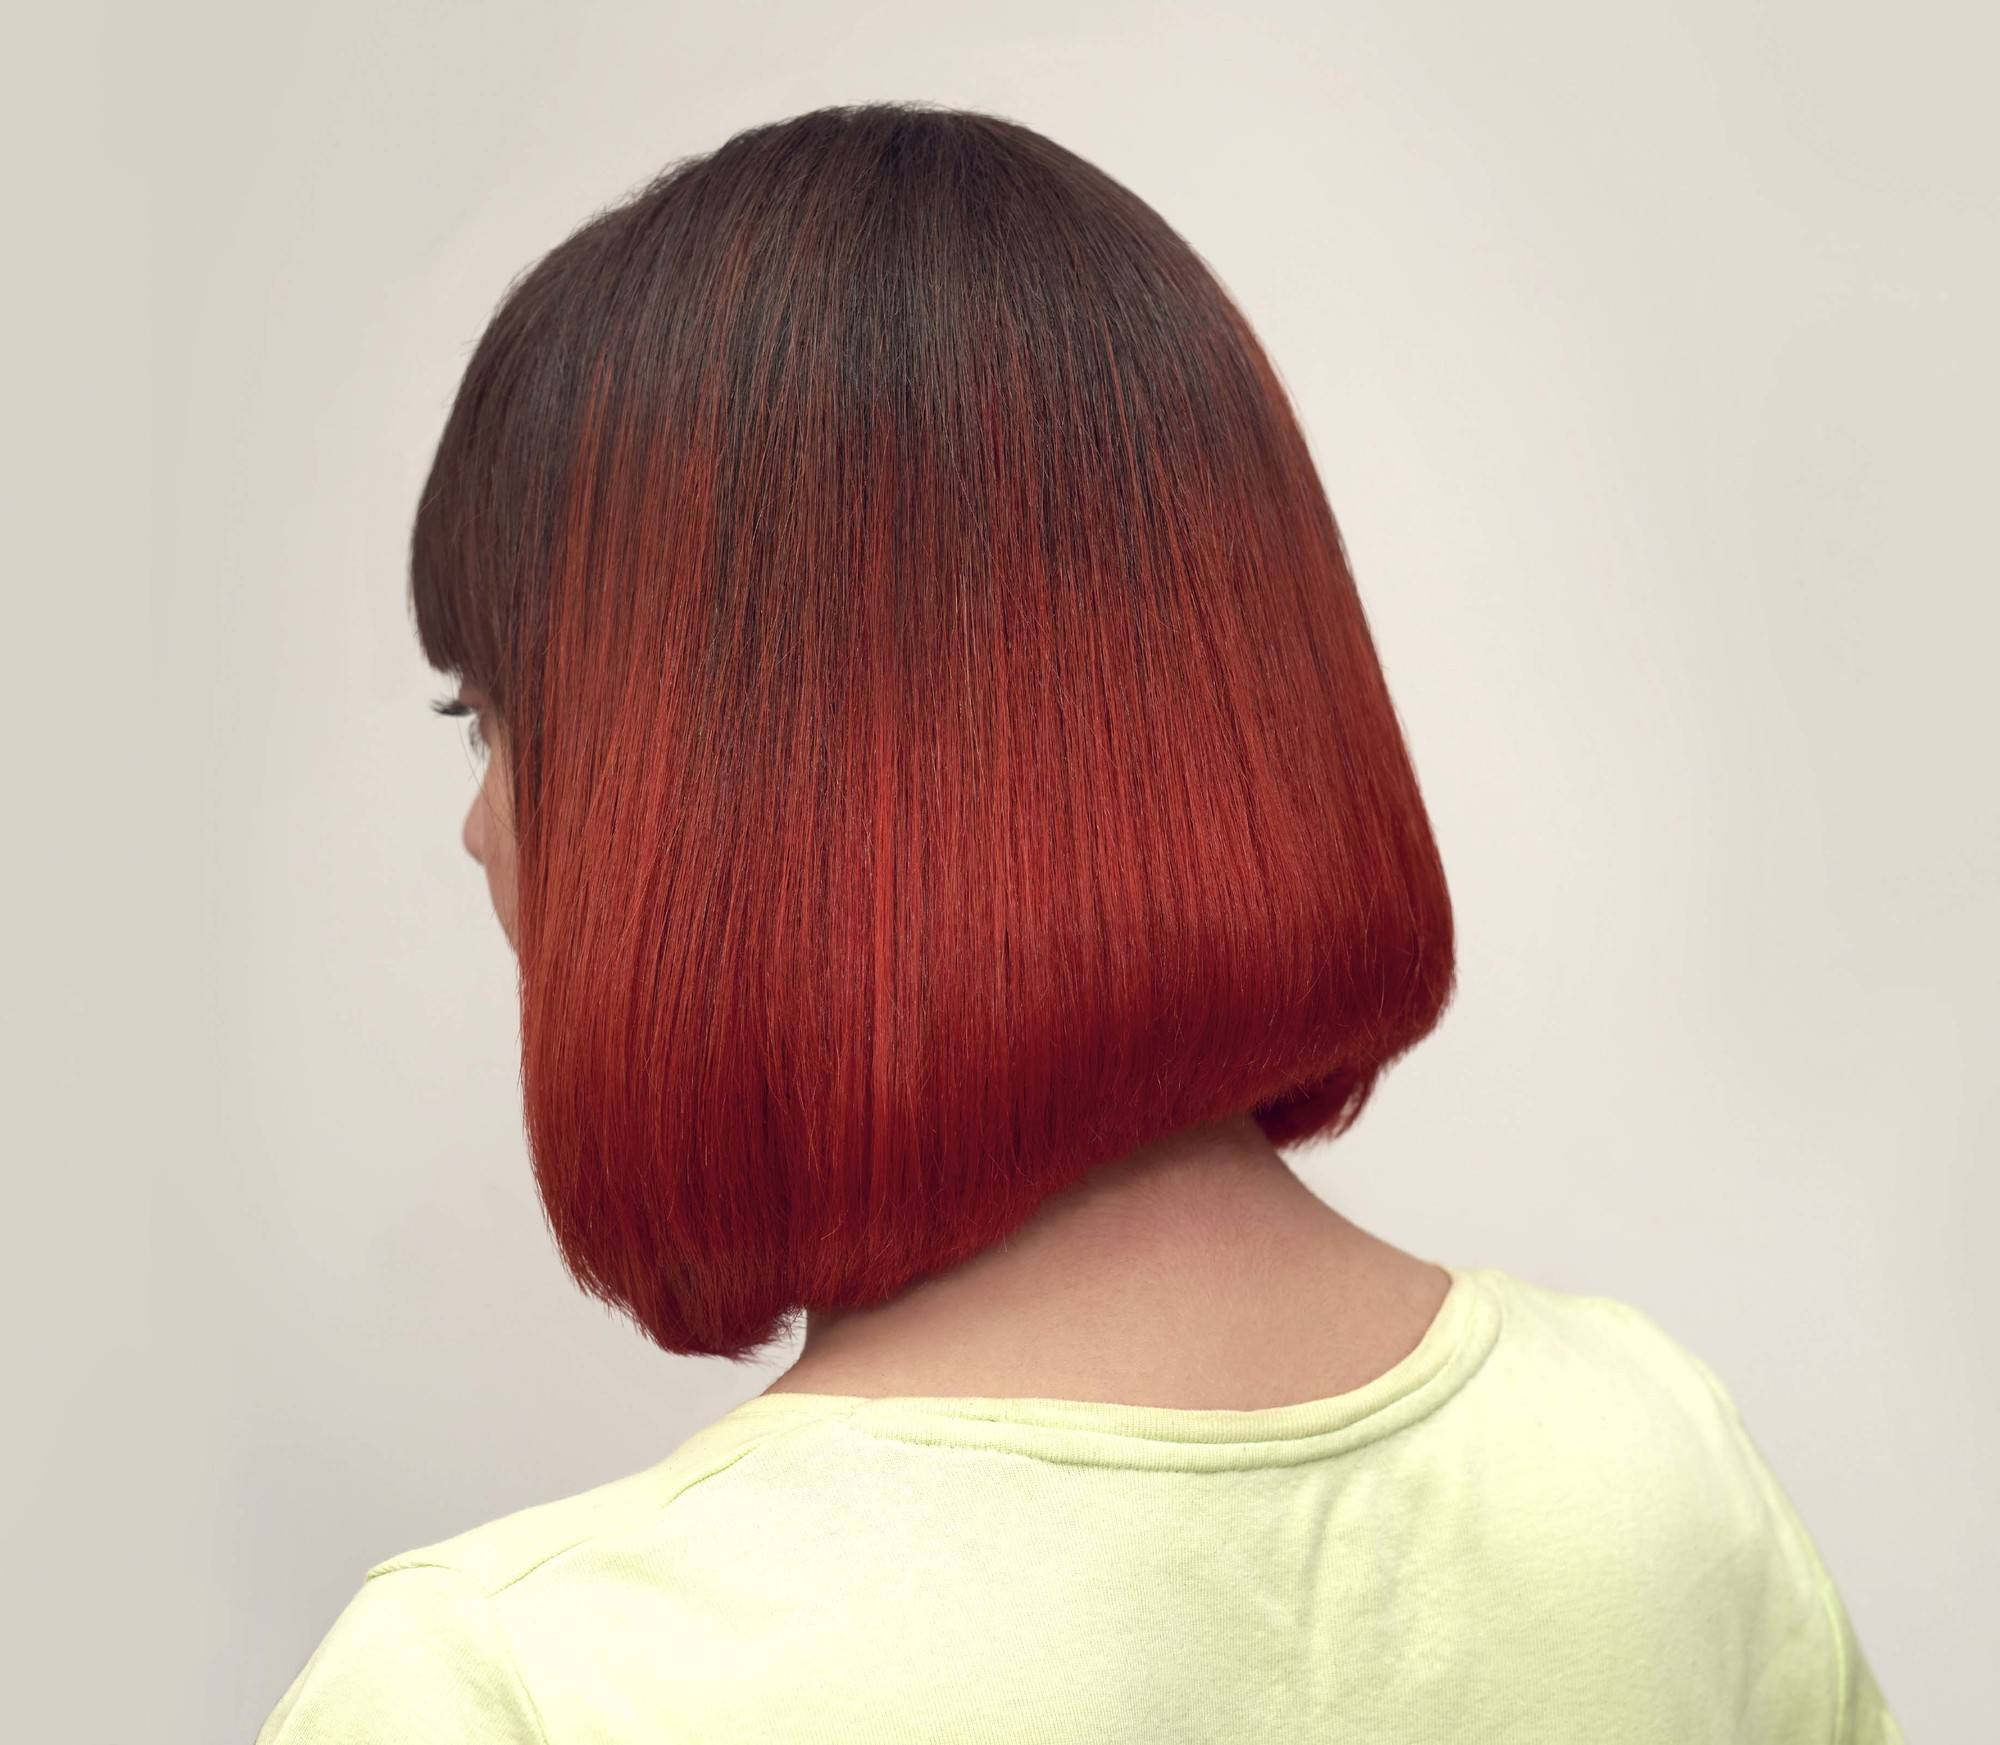 Red Ombre Highlights Are One Of The Best Ways To Enhance Red Hair With Highlights